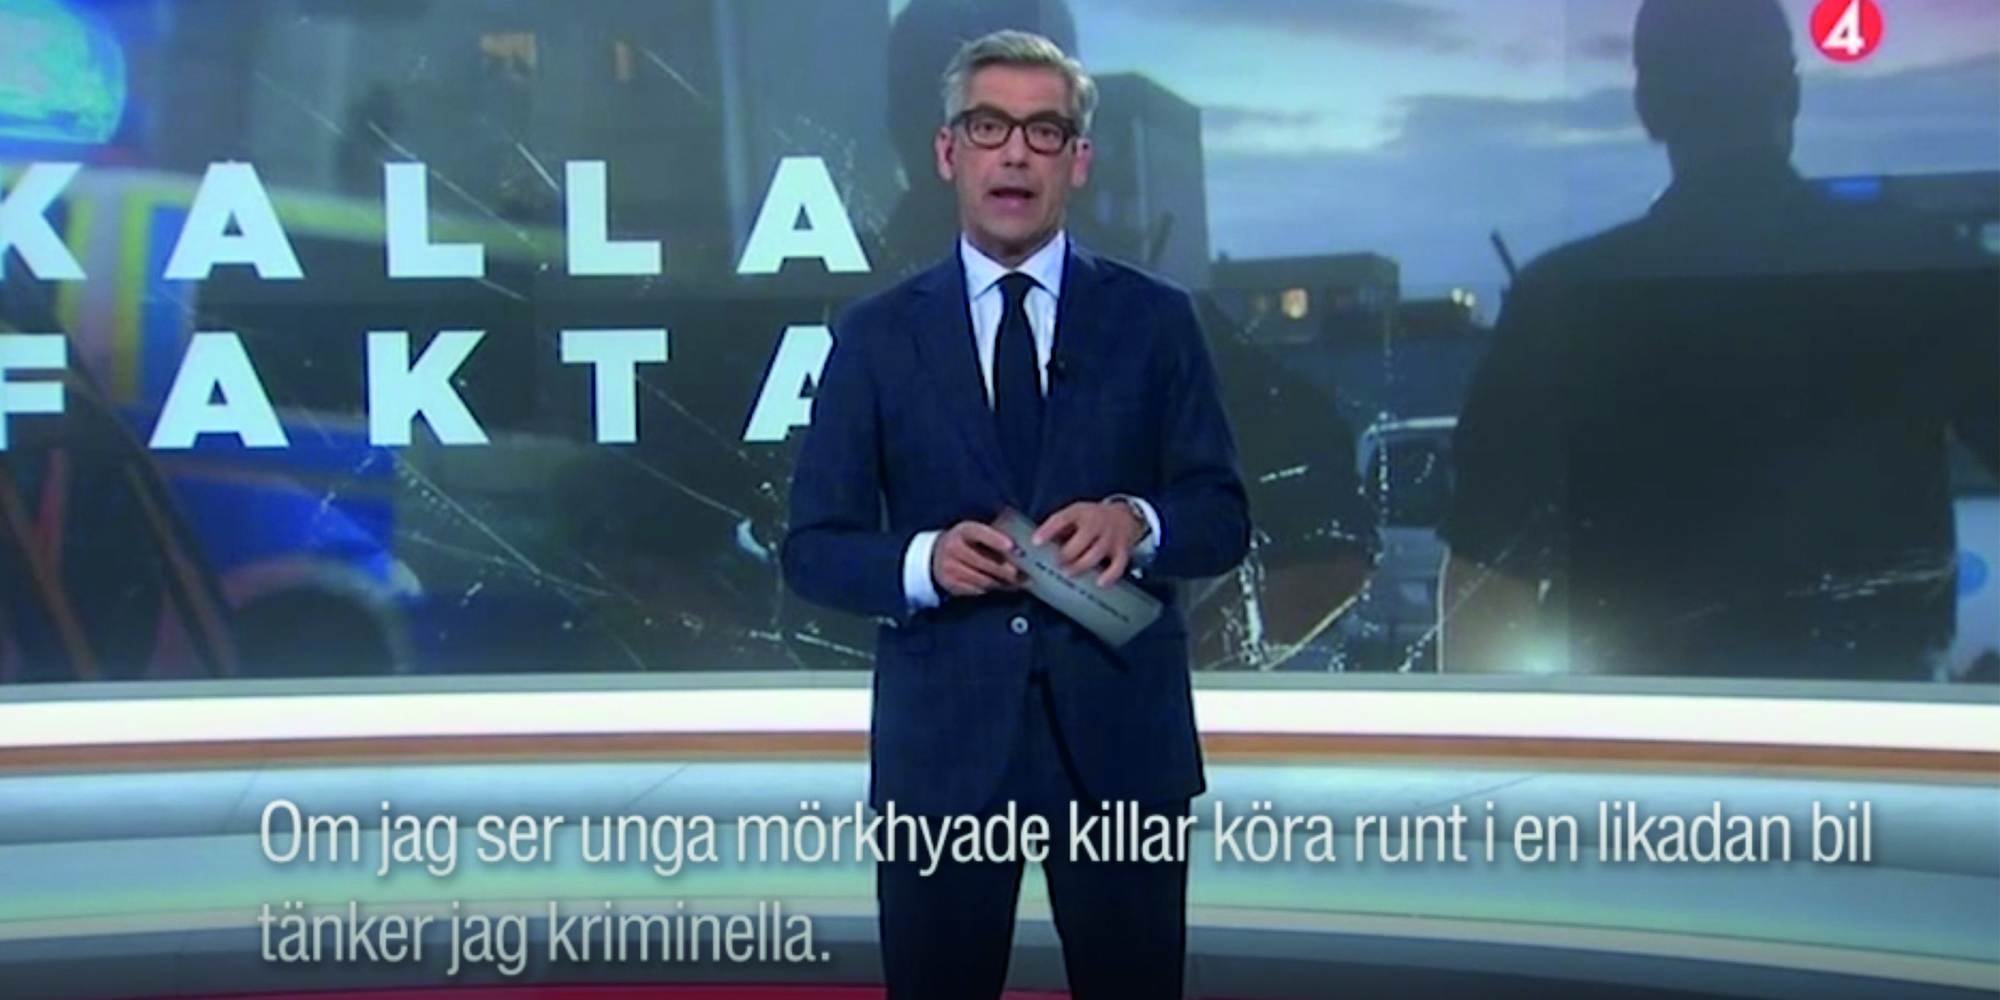 tv4 anders kraft rasprofilering